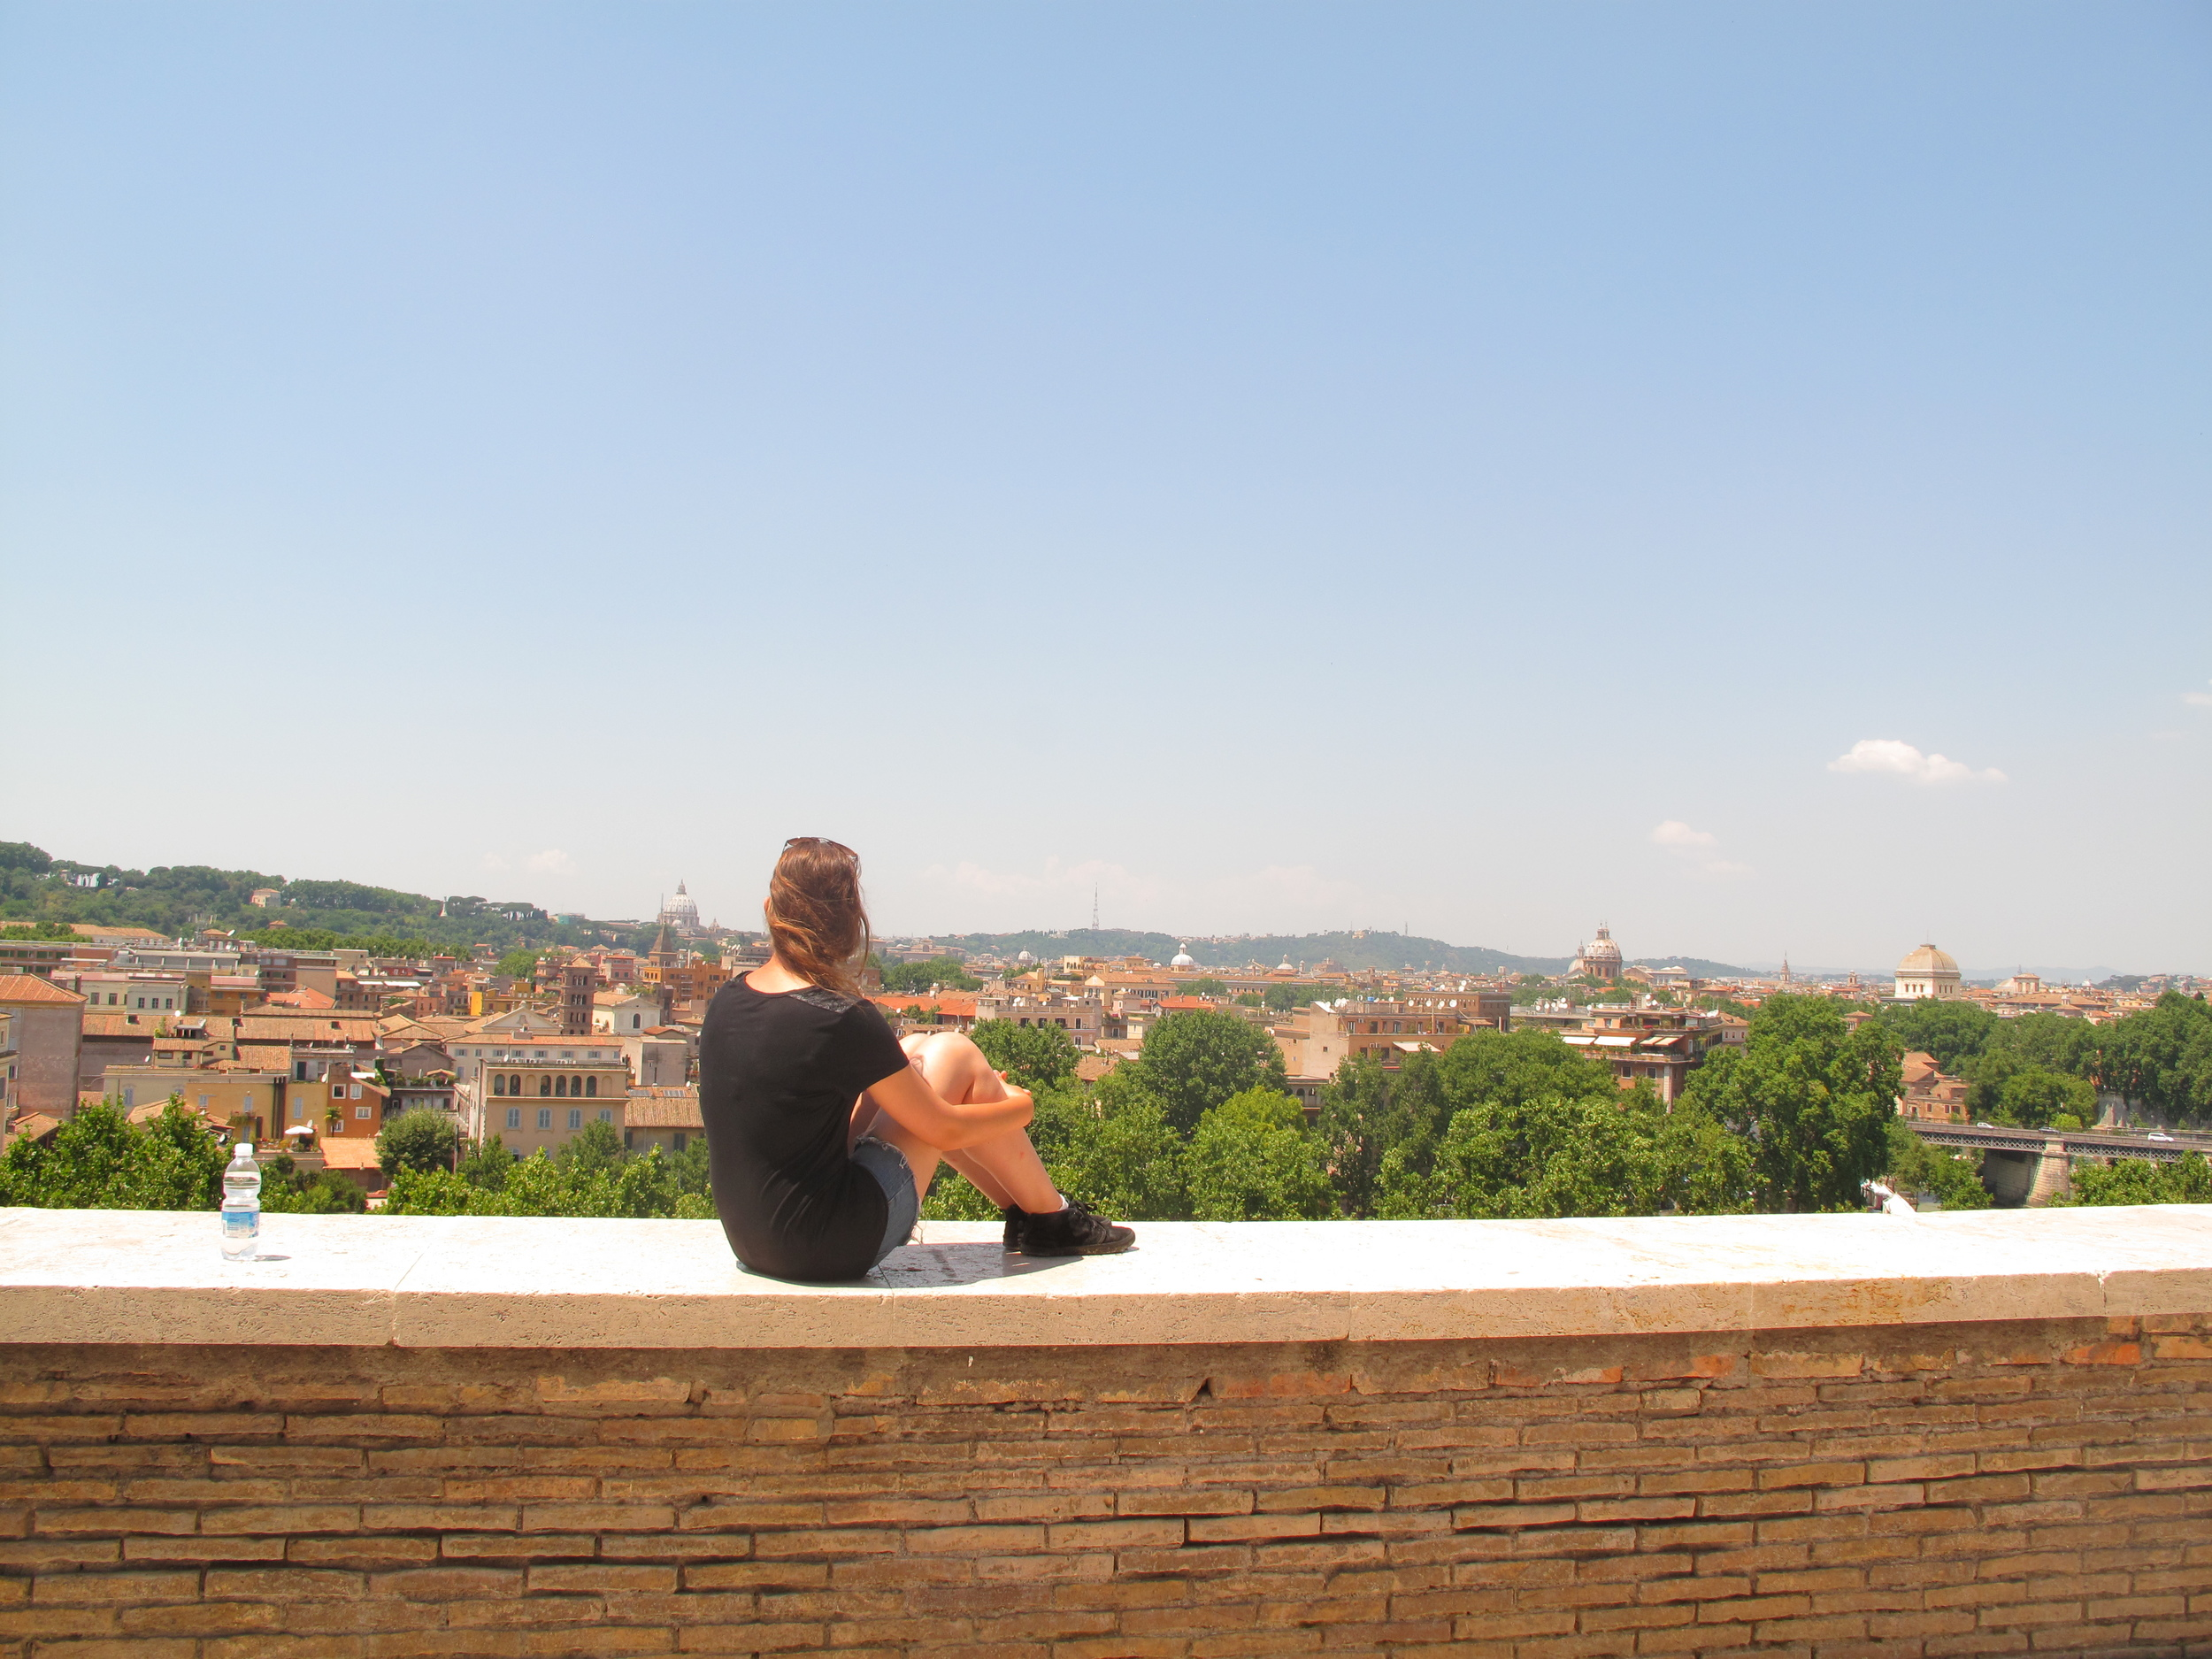 Looking out over Rome from the Giardino degli Aranci